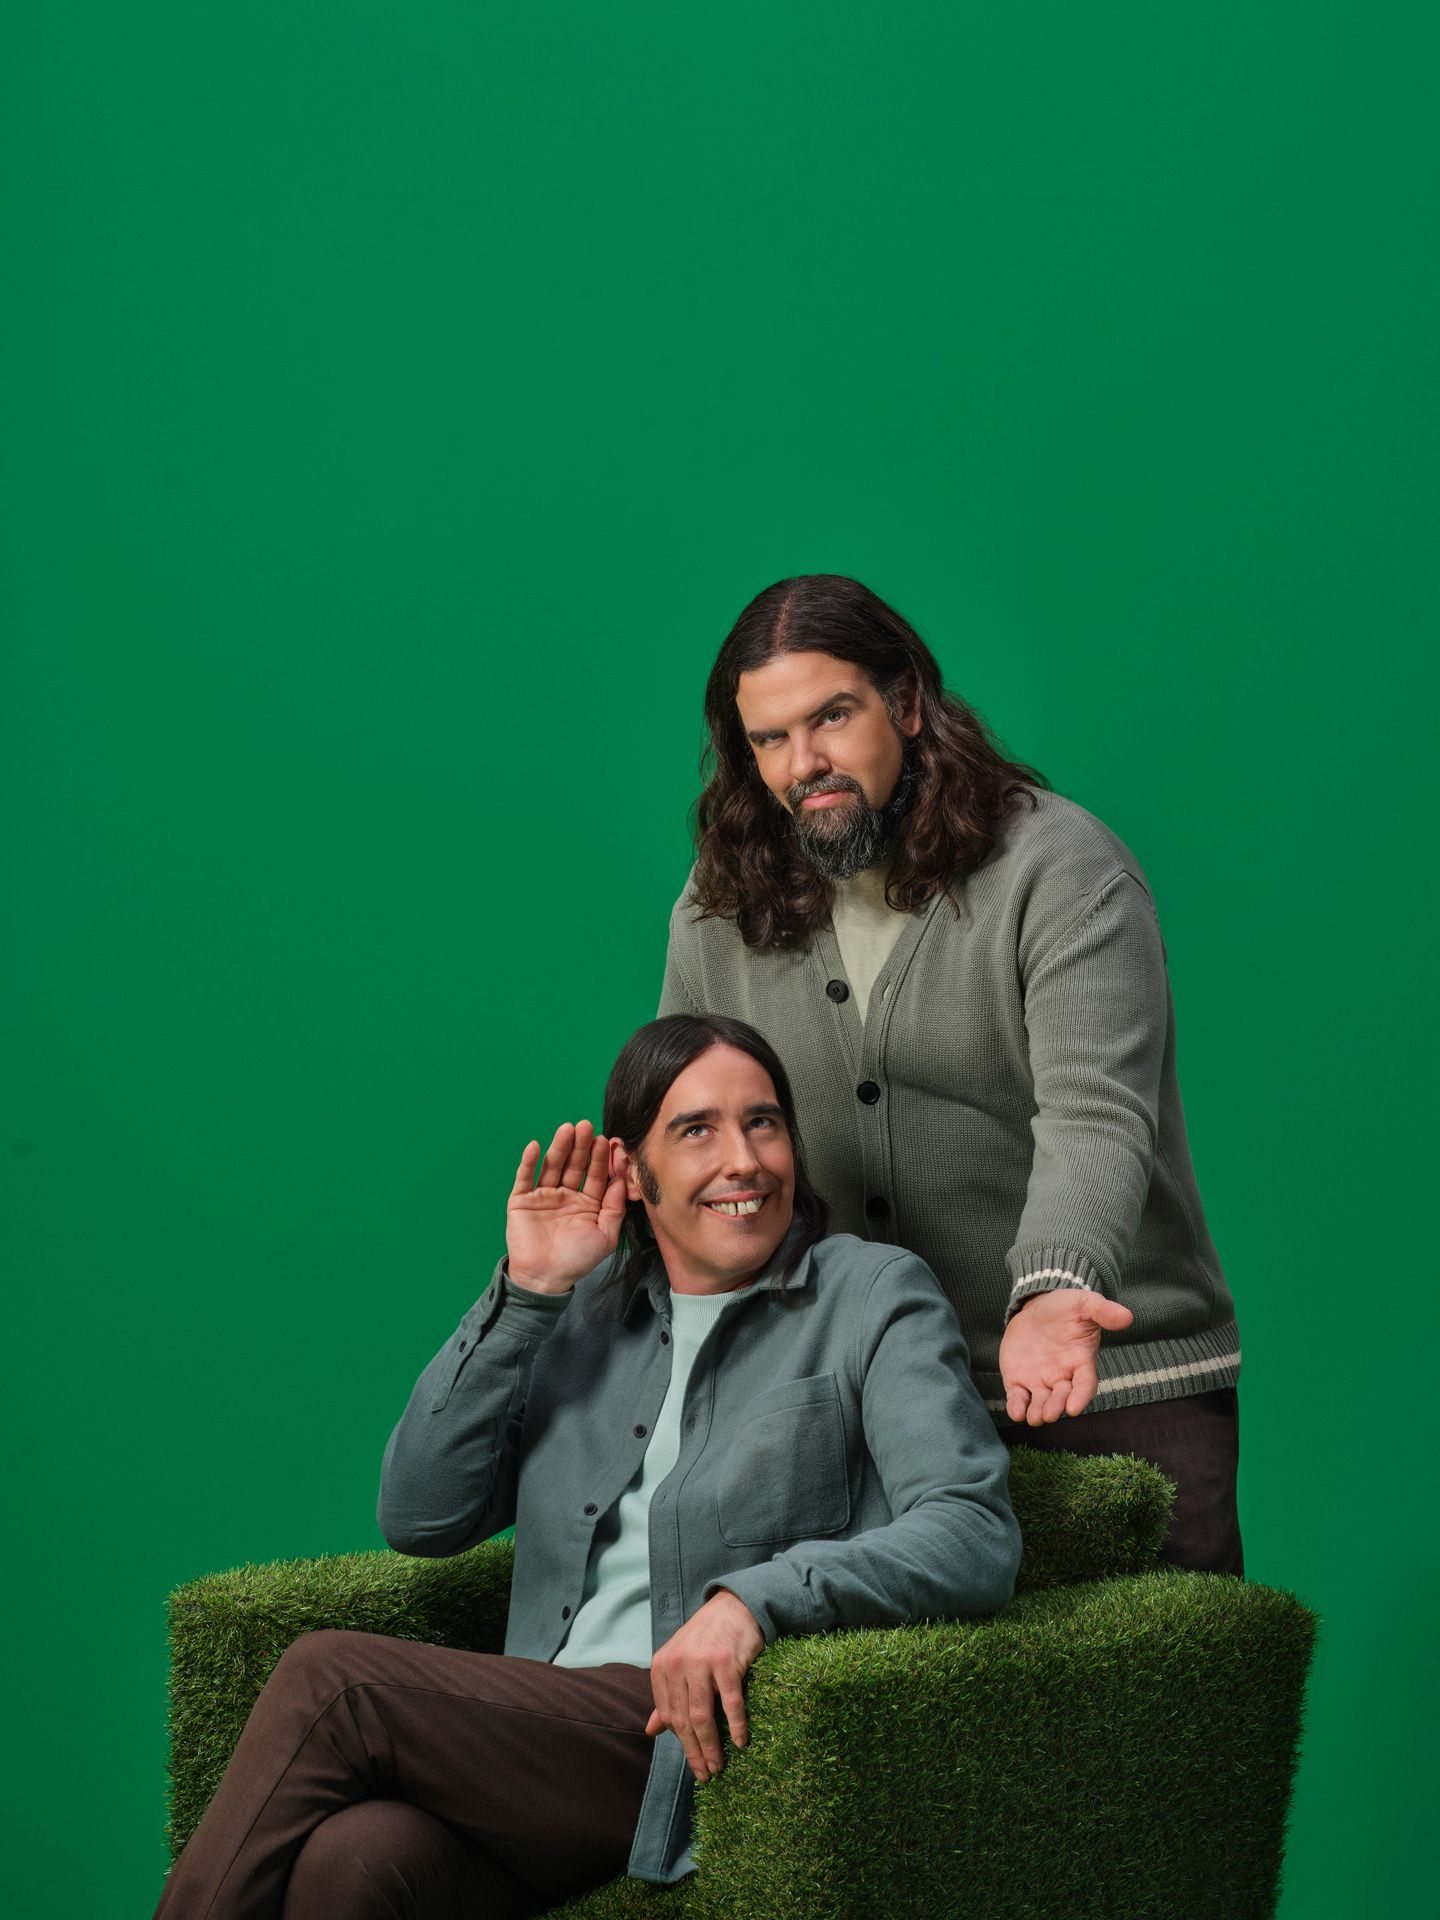 Duo Denis Drolet making funny faces on a sofa covered with fake grass and a green wall.